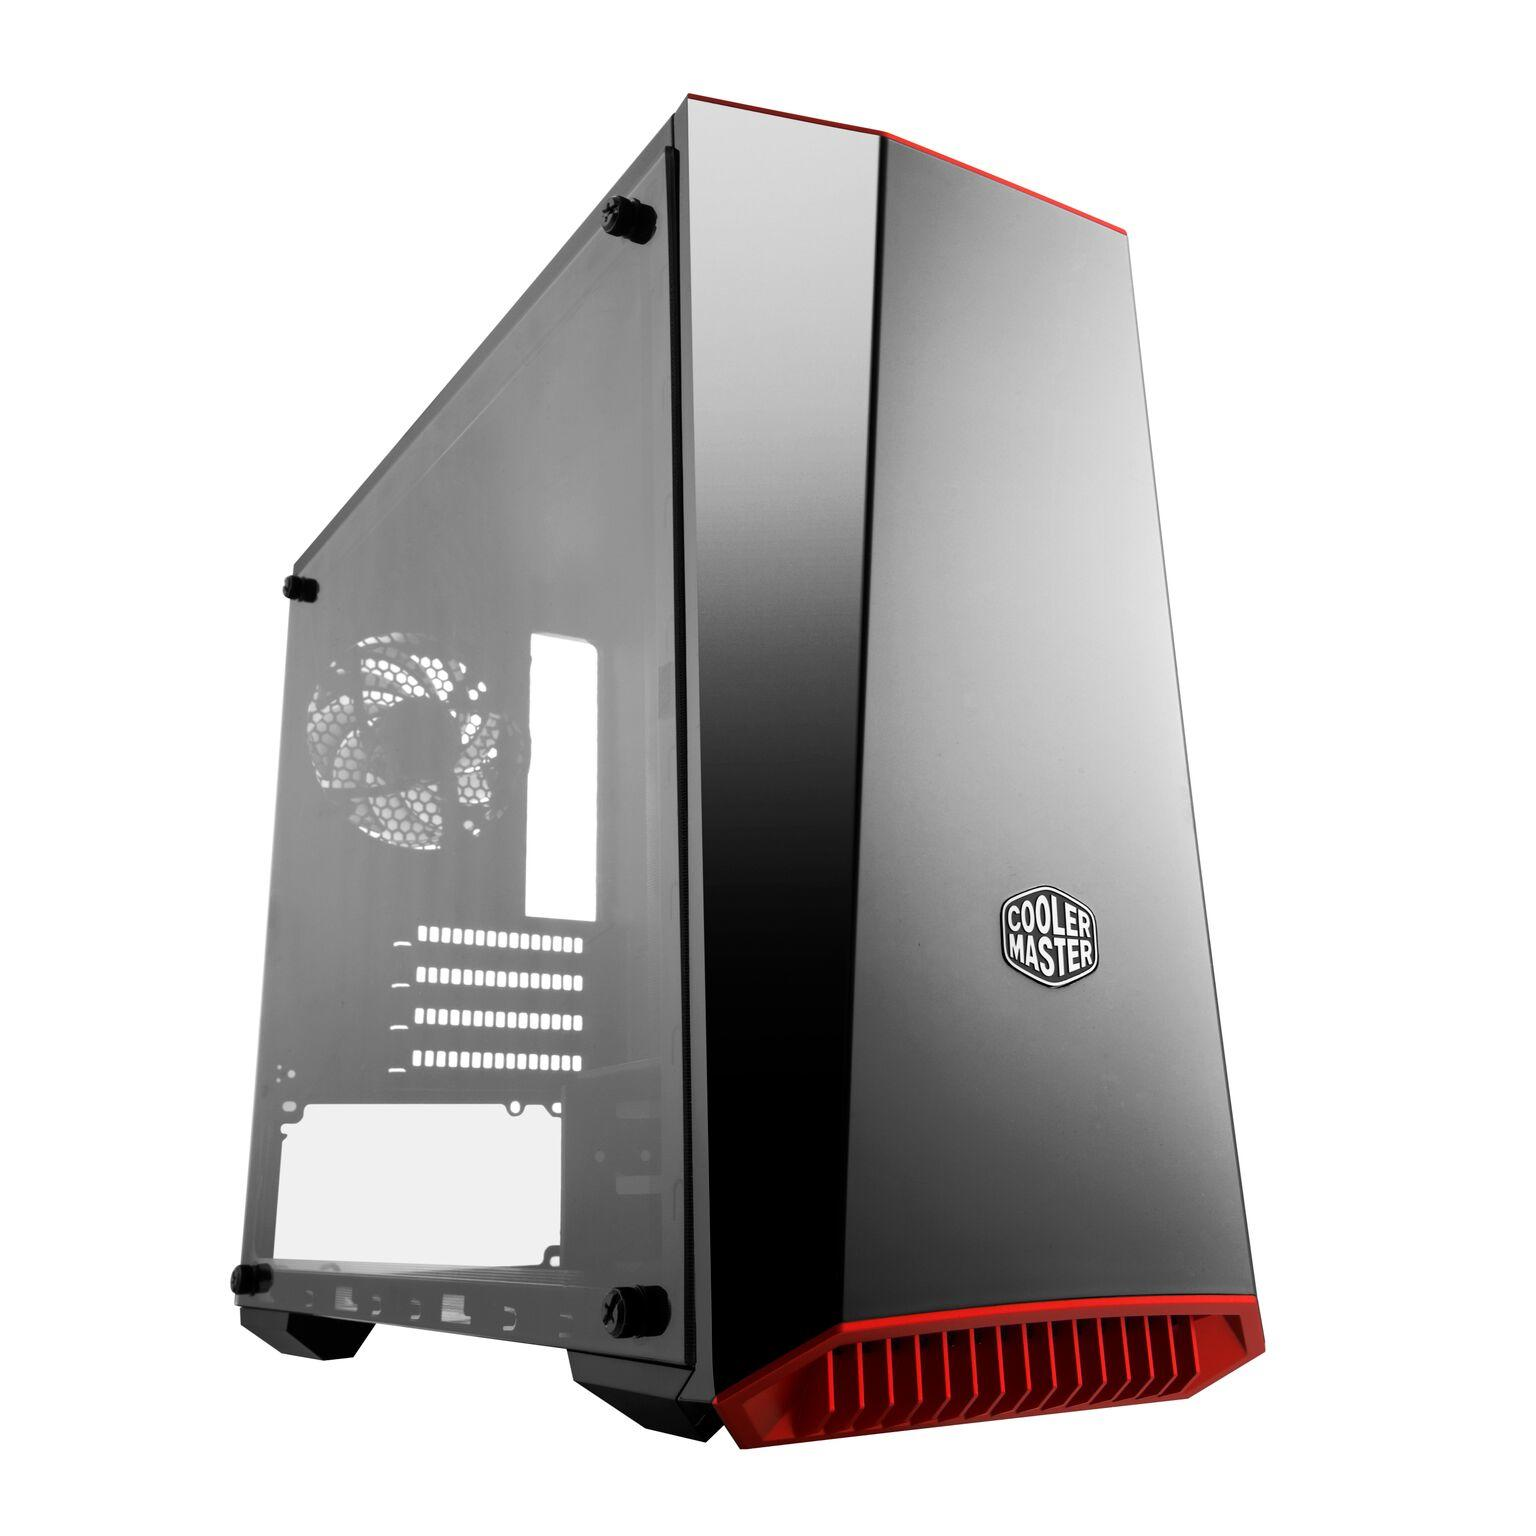 Punch GDT, i7, 16GB, 2TB, 256GB, GTX1080, Win 10